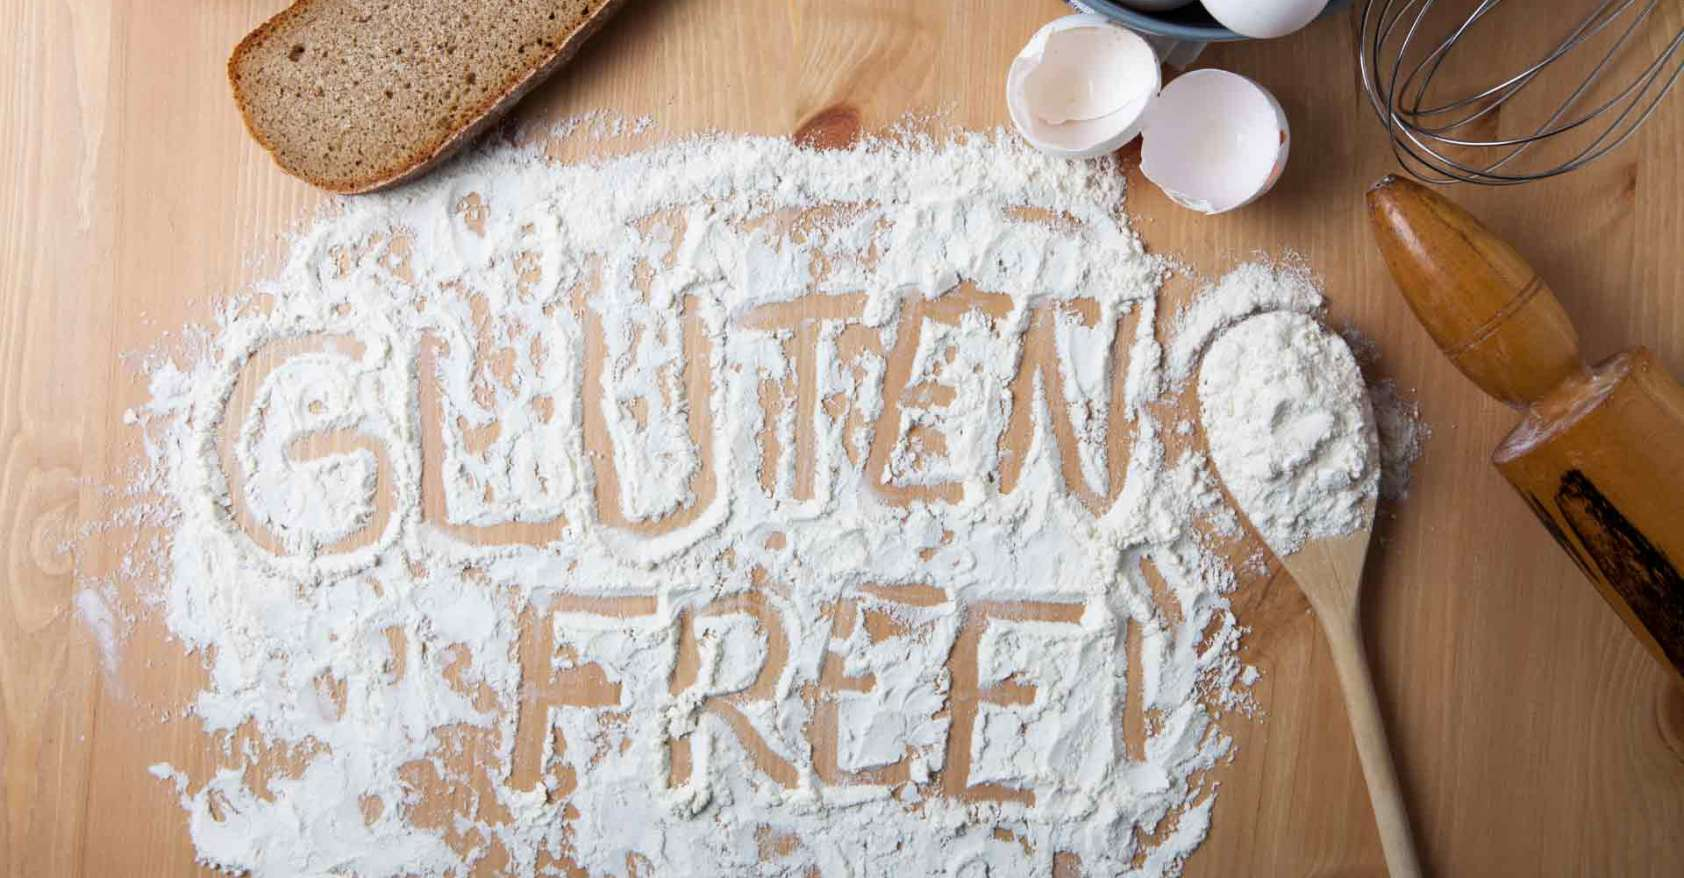 The words Gluten Free written in flour on a wooden table Gluten-free Watchdog